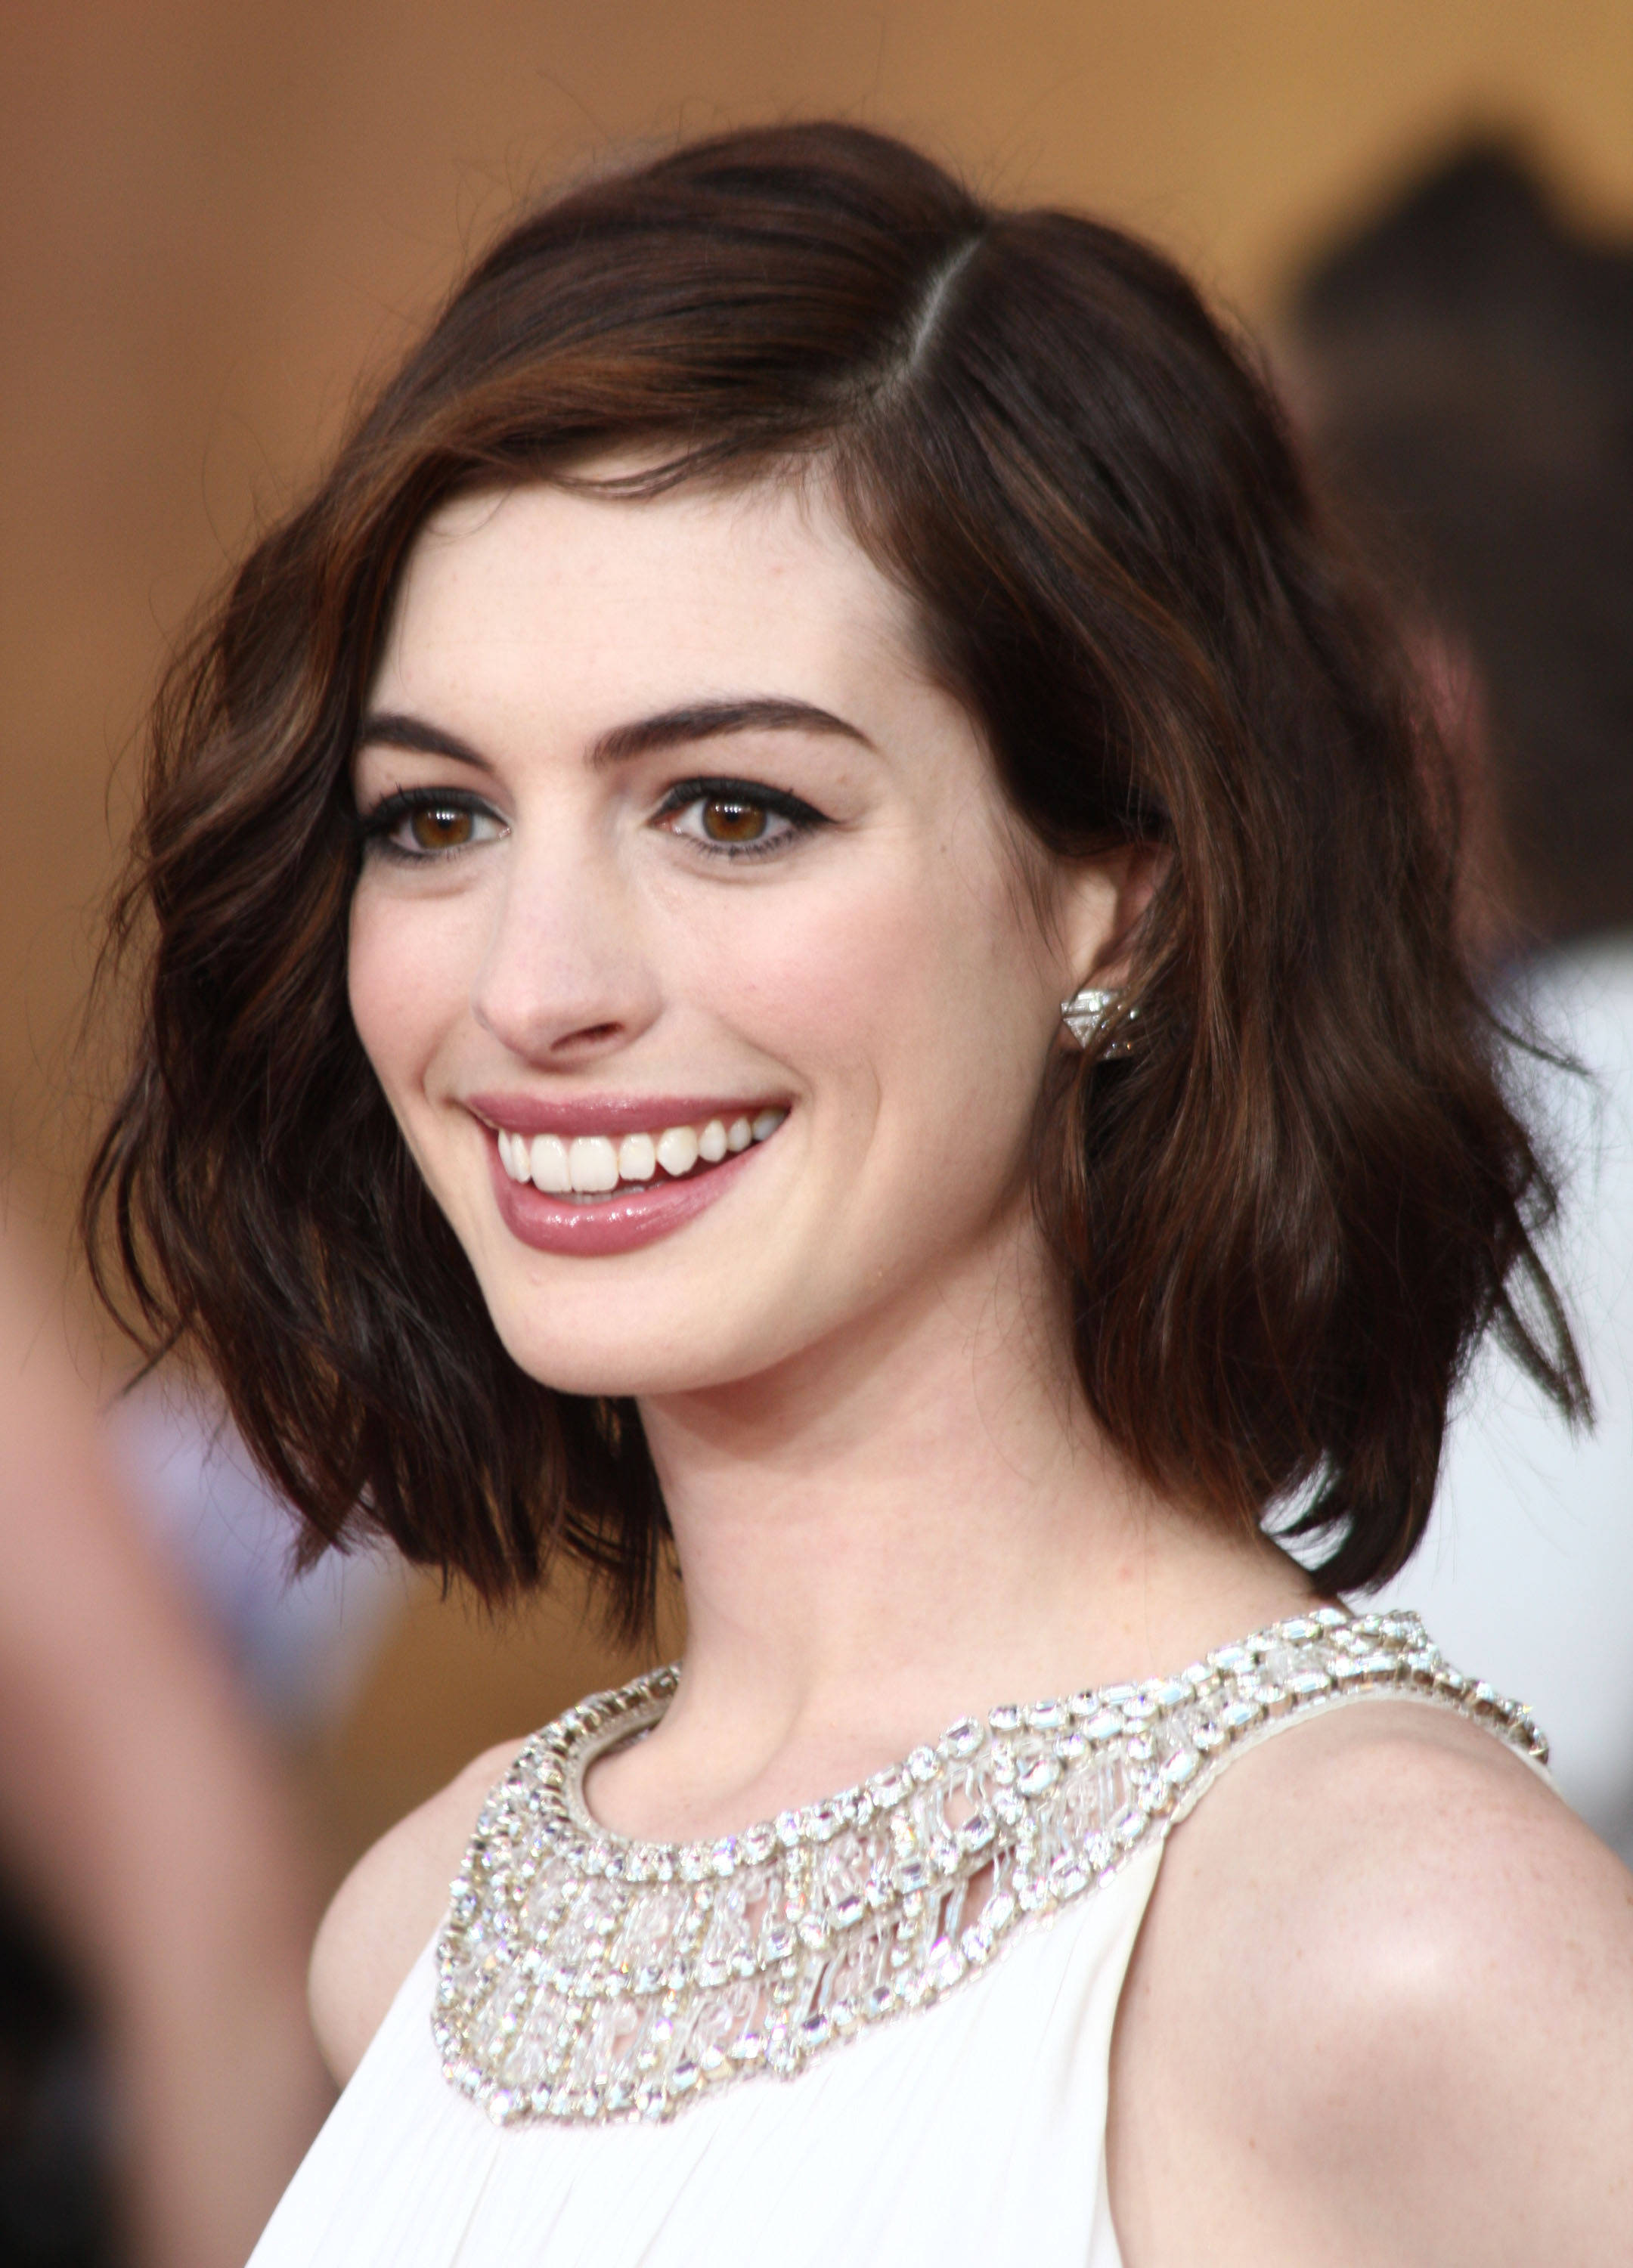 anne hathaway curly bob financeandbusiness curly sue 1991 imdb tags anne hathaway